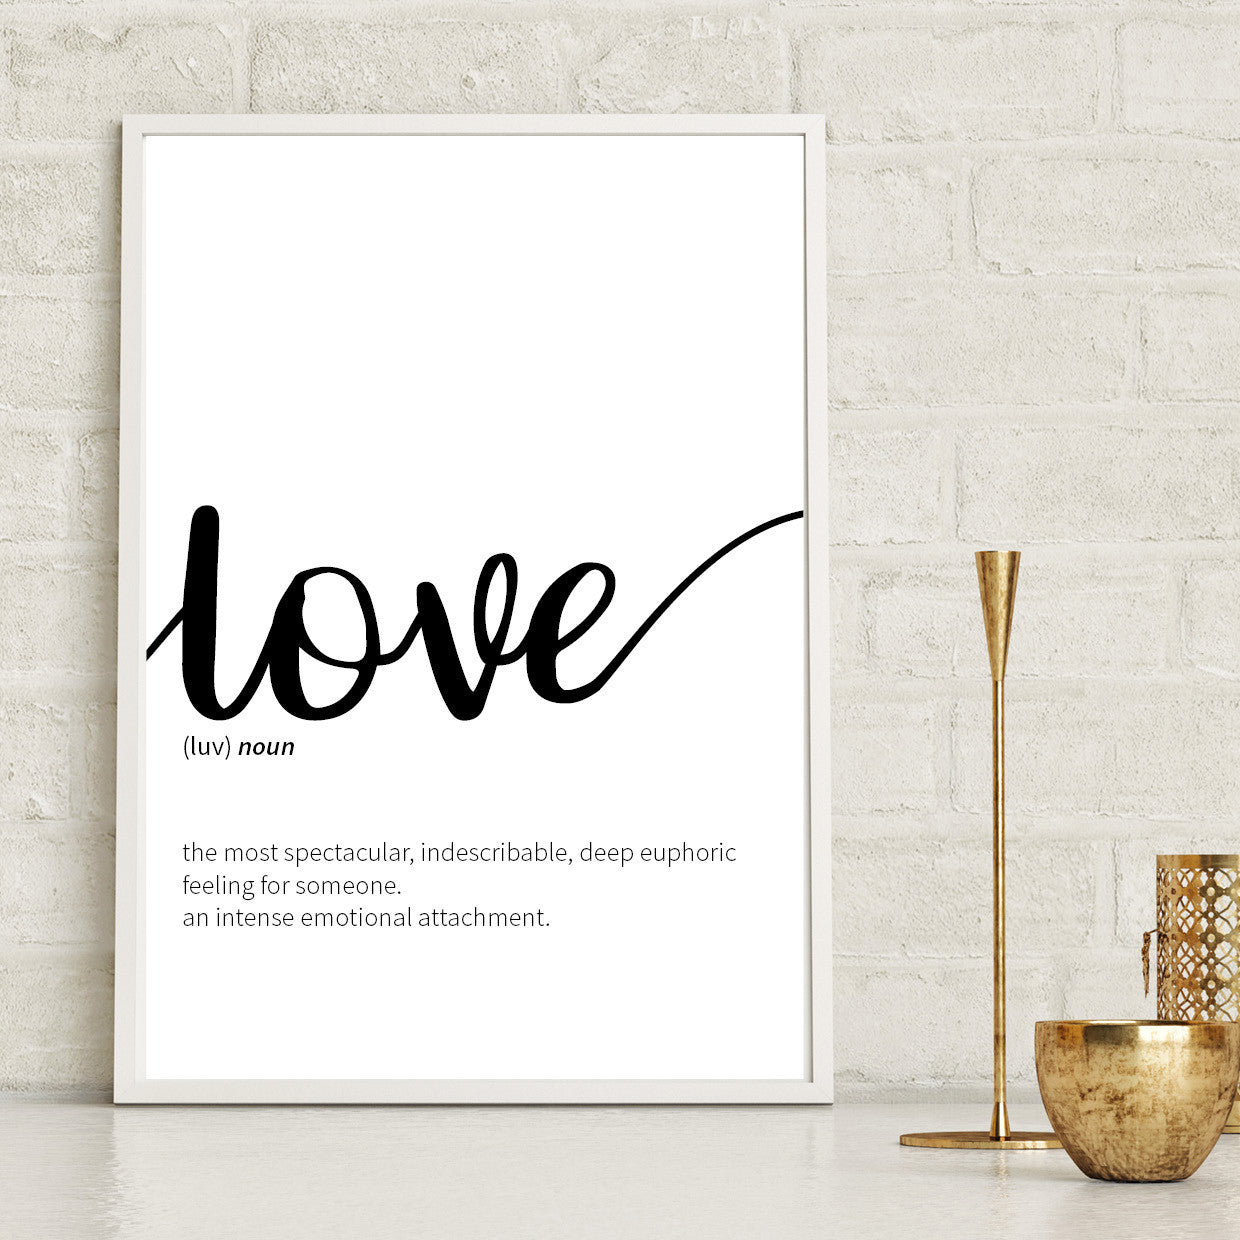 Love definition print couture moments love dictionary definition print stopboris Image collections